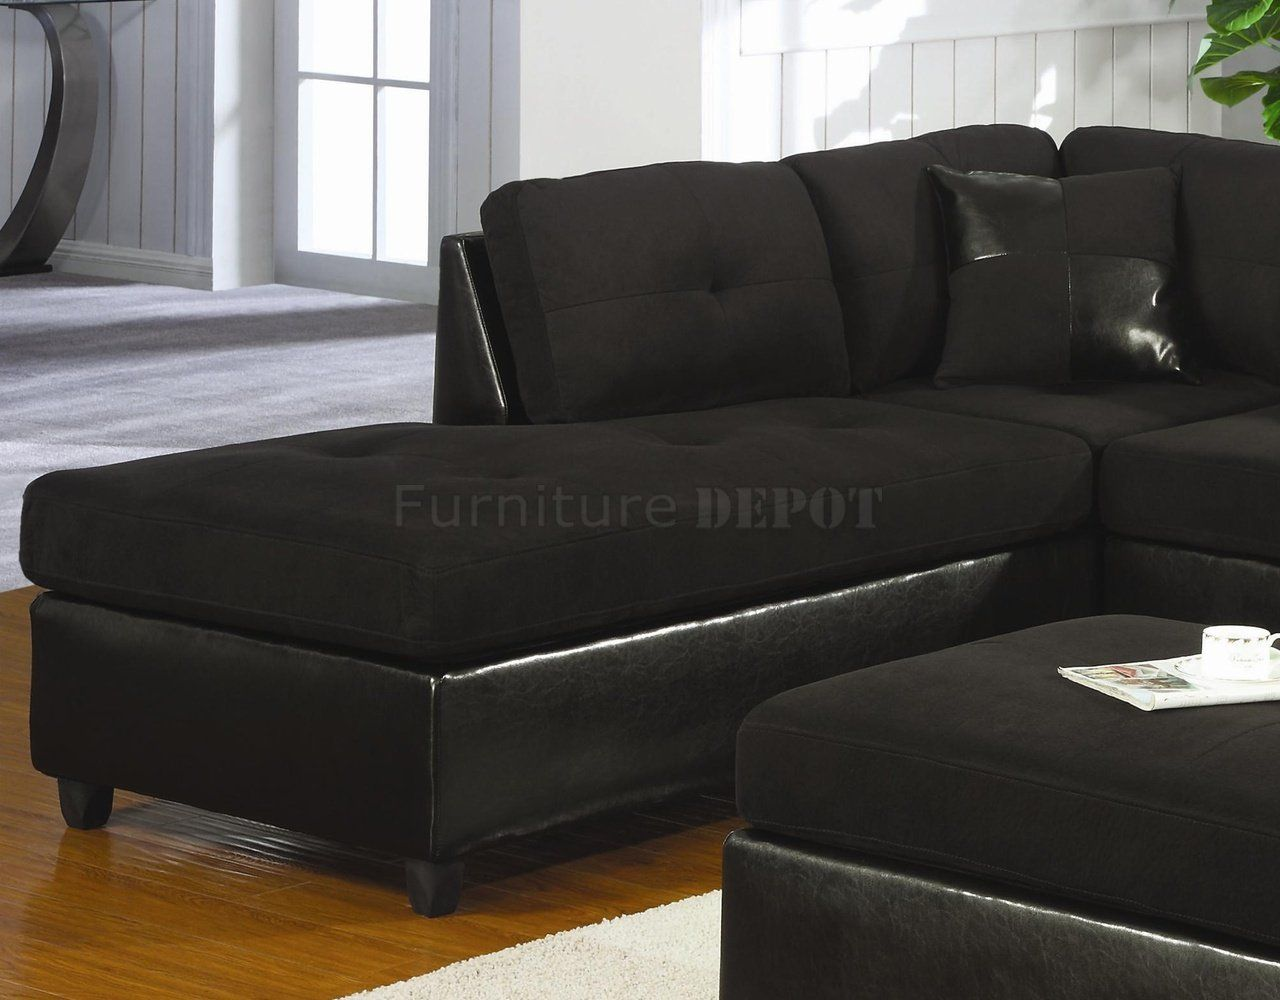 couch room with for black cherry cheap astounding living premium designs sectional yellow pillows gallery also and throw furniture sofa